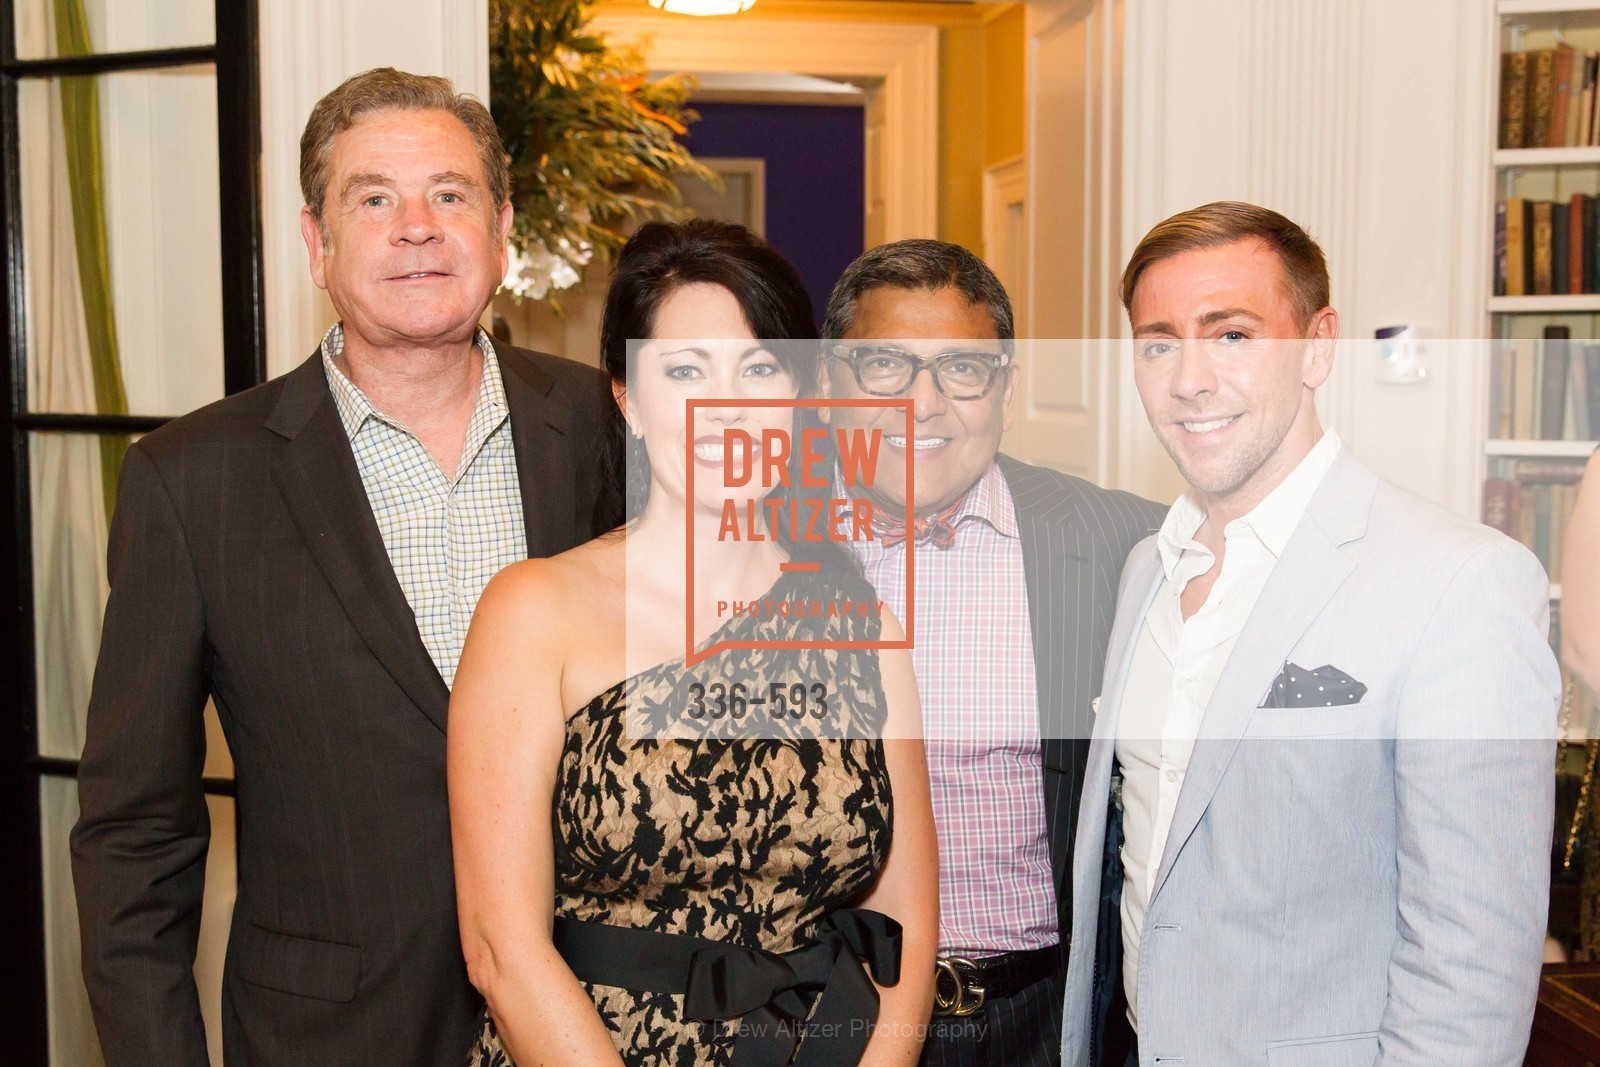 Louis Silcox, Shawna Barlow, Riccardo Benavides, Mark Rhoades, COUTURE FOR A CAUSE, US, October 5th, 2014,Drew Altizer, Drew Altizer Photography, full-service agency, private events, San Francisco photographer, photographer california